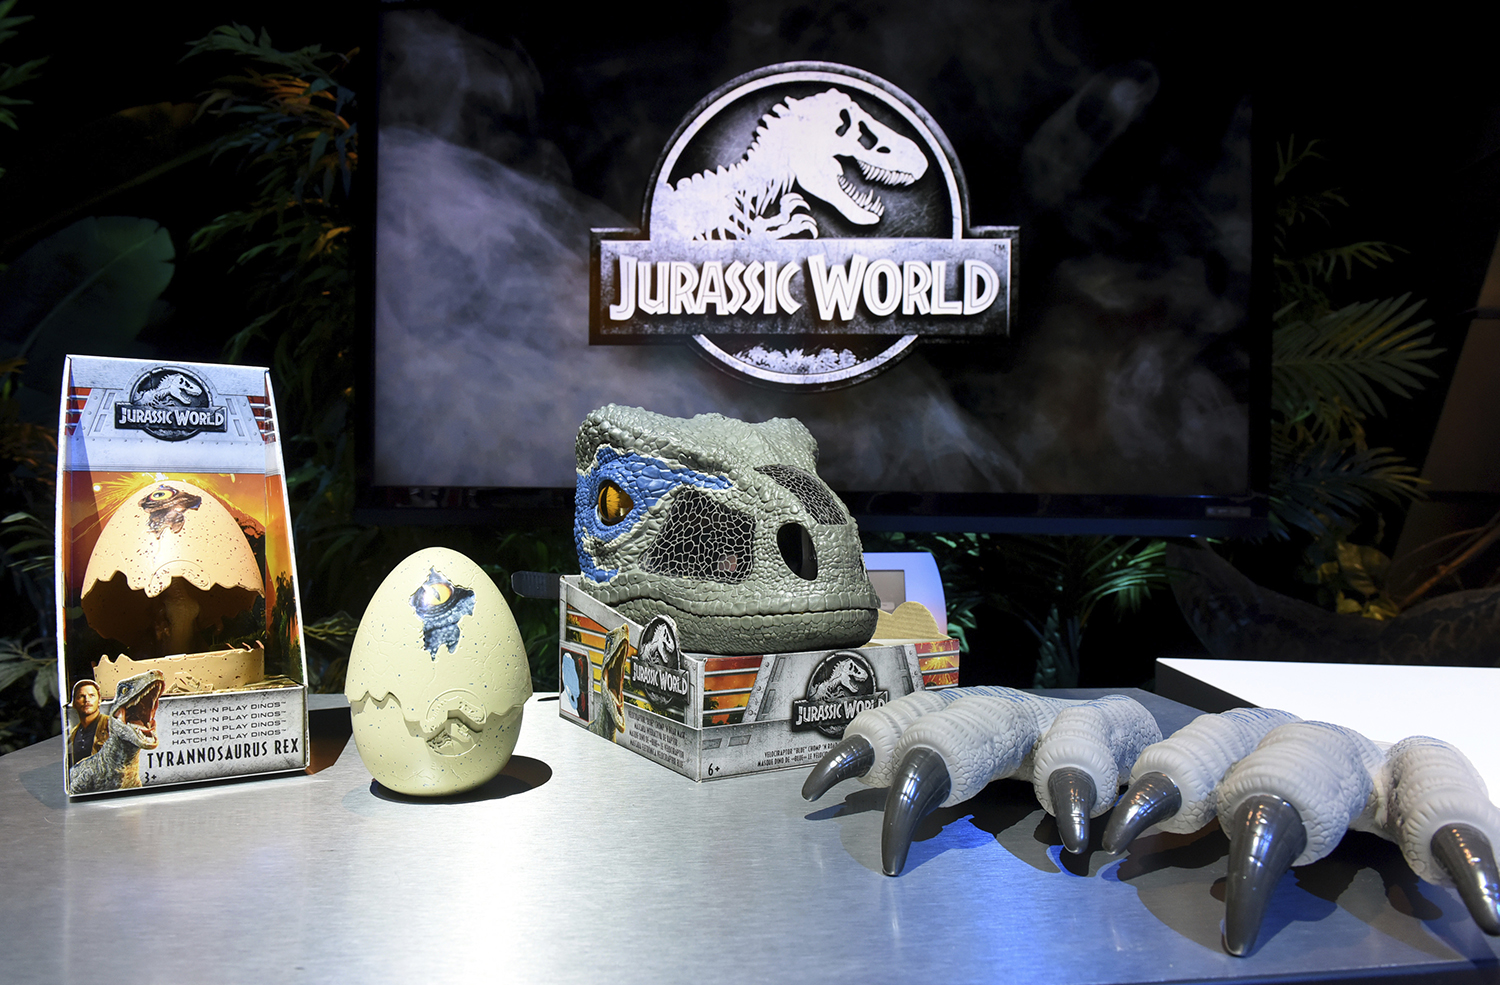 <div class='meta'><div class='origin-logo' data-origin='AP'></div><span class='caption-text' data-credit='Diane Bondareff/AP Images for Mattel'>The Jurassic World Chomp and Roar Mask features realistic details like skin texture and color, real moving eyes and teeth.</span></div>